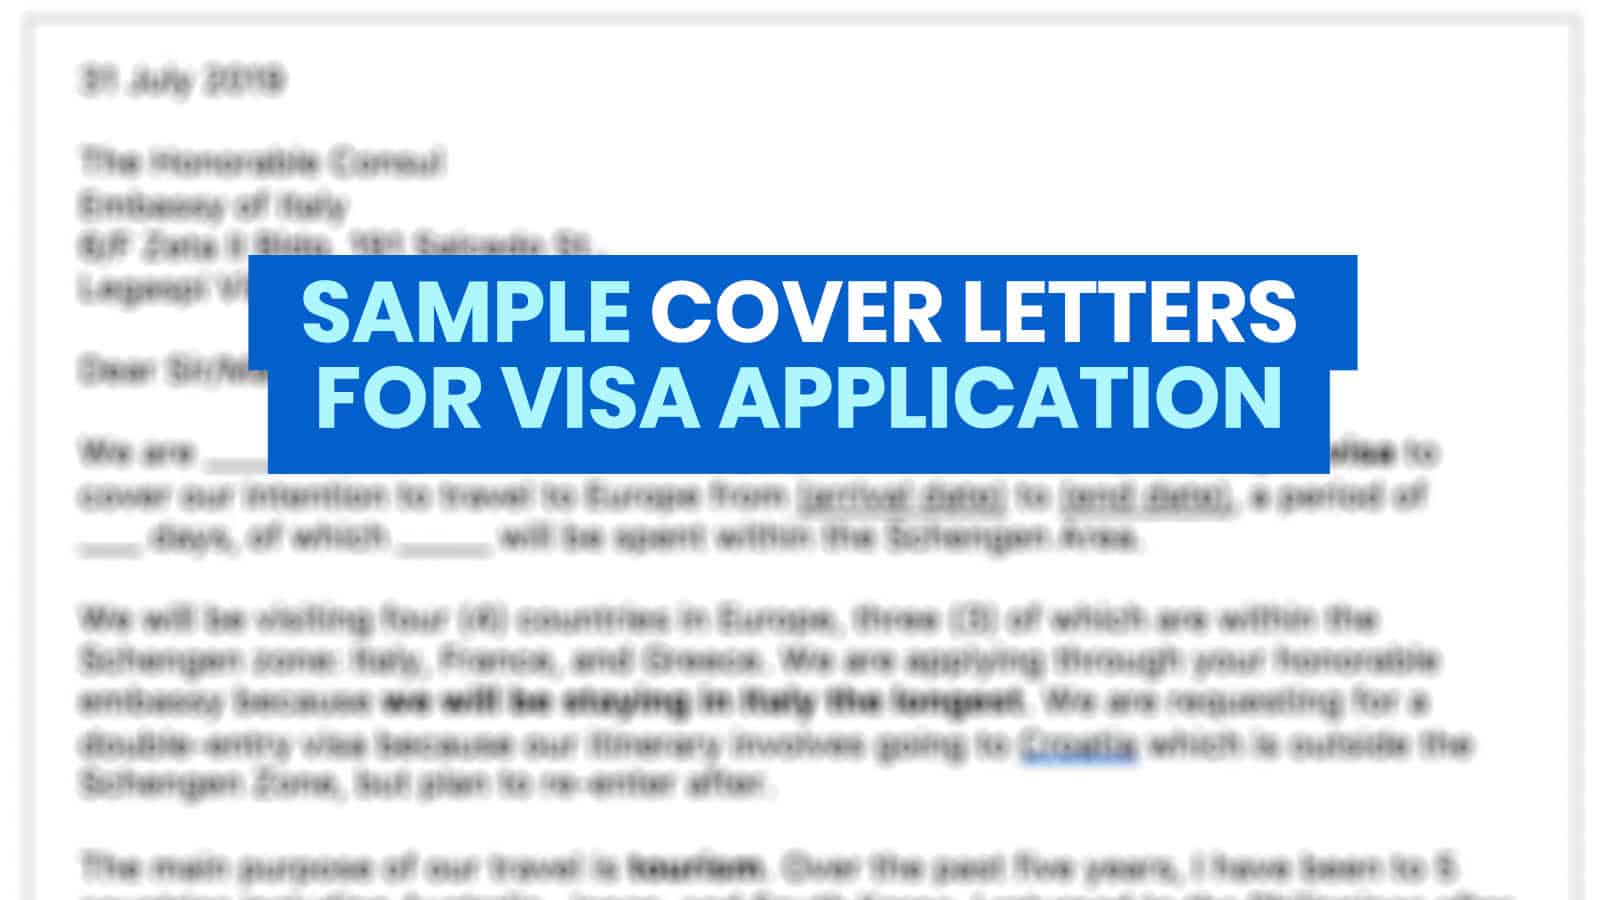 SAMPLE COVER LETTERS for VISA APPLICATION: Korea, Schengen, Australia